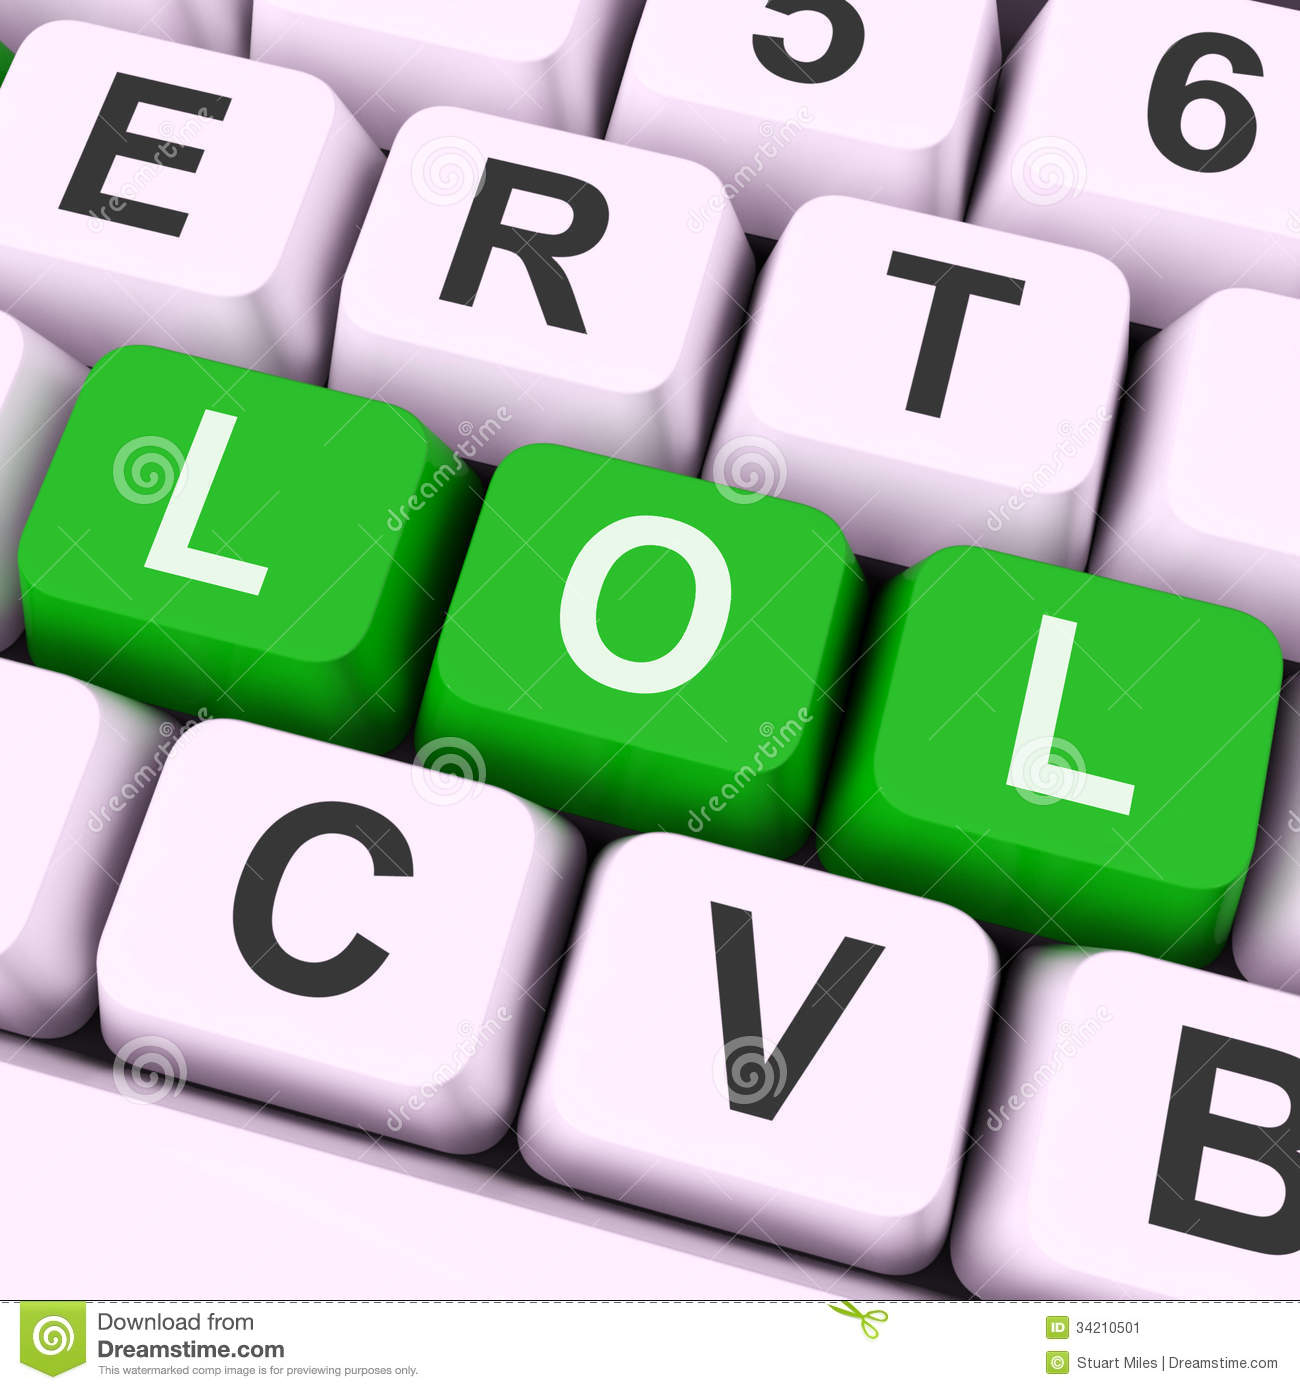 Laugh Out Loud Meaning